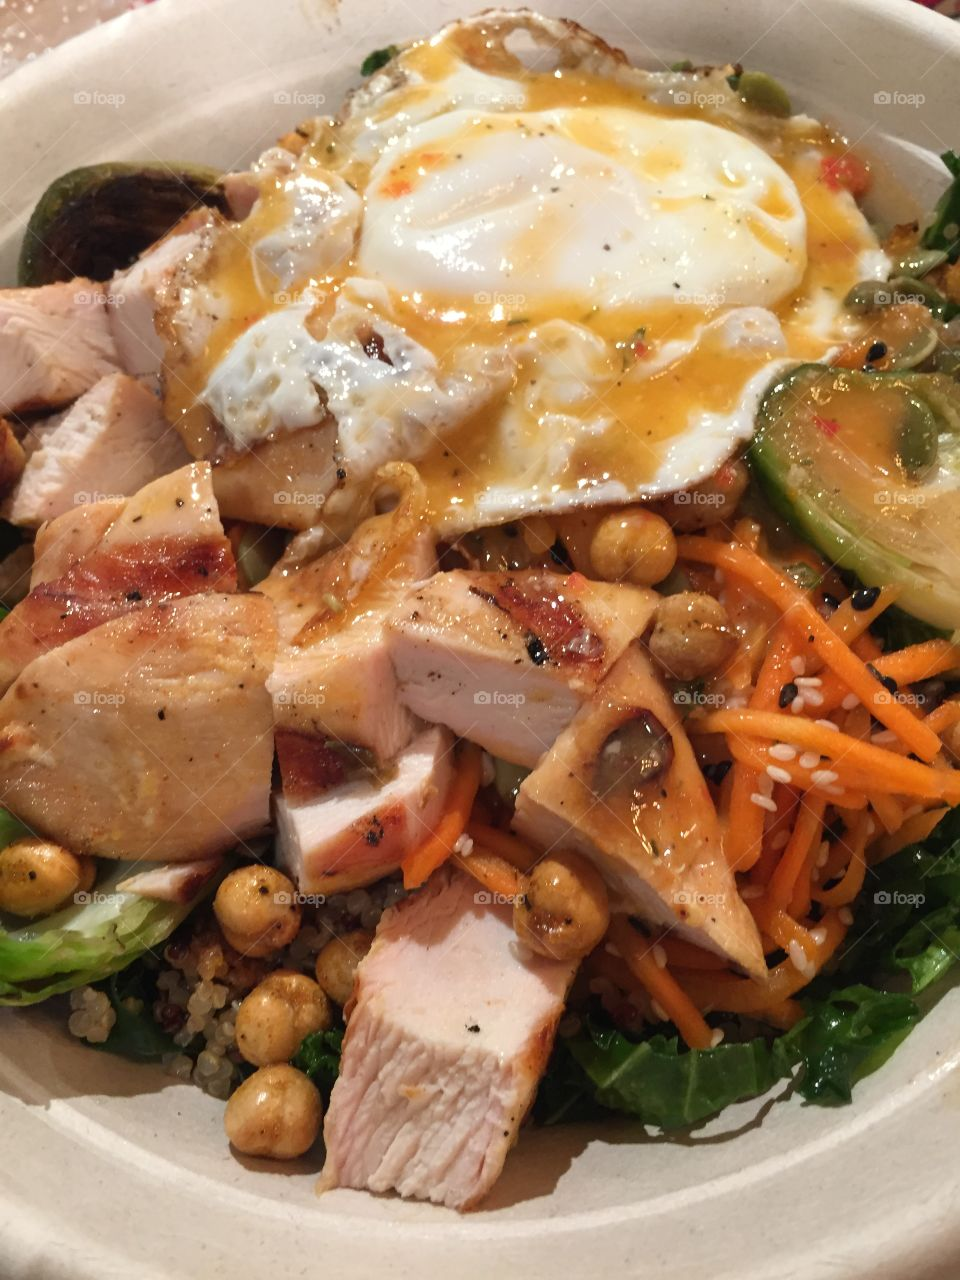 Kale salad with chicken and quinoa and carrots and other good veggies